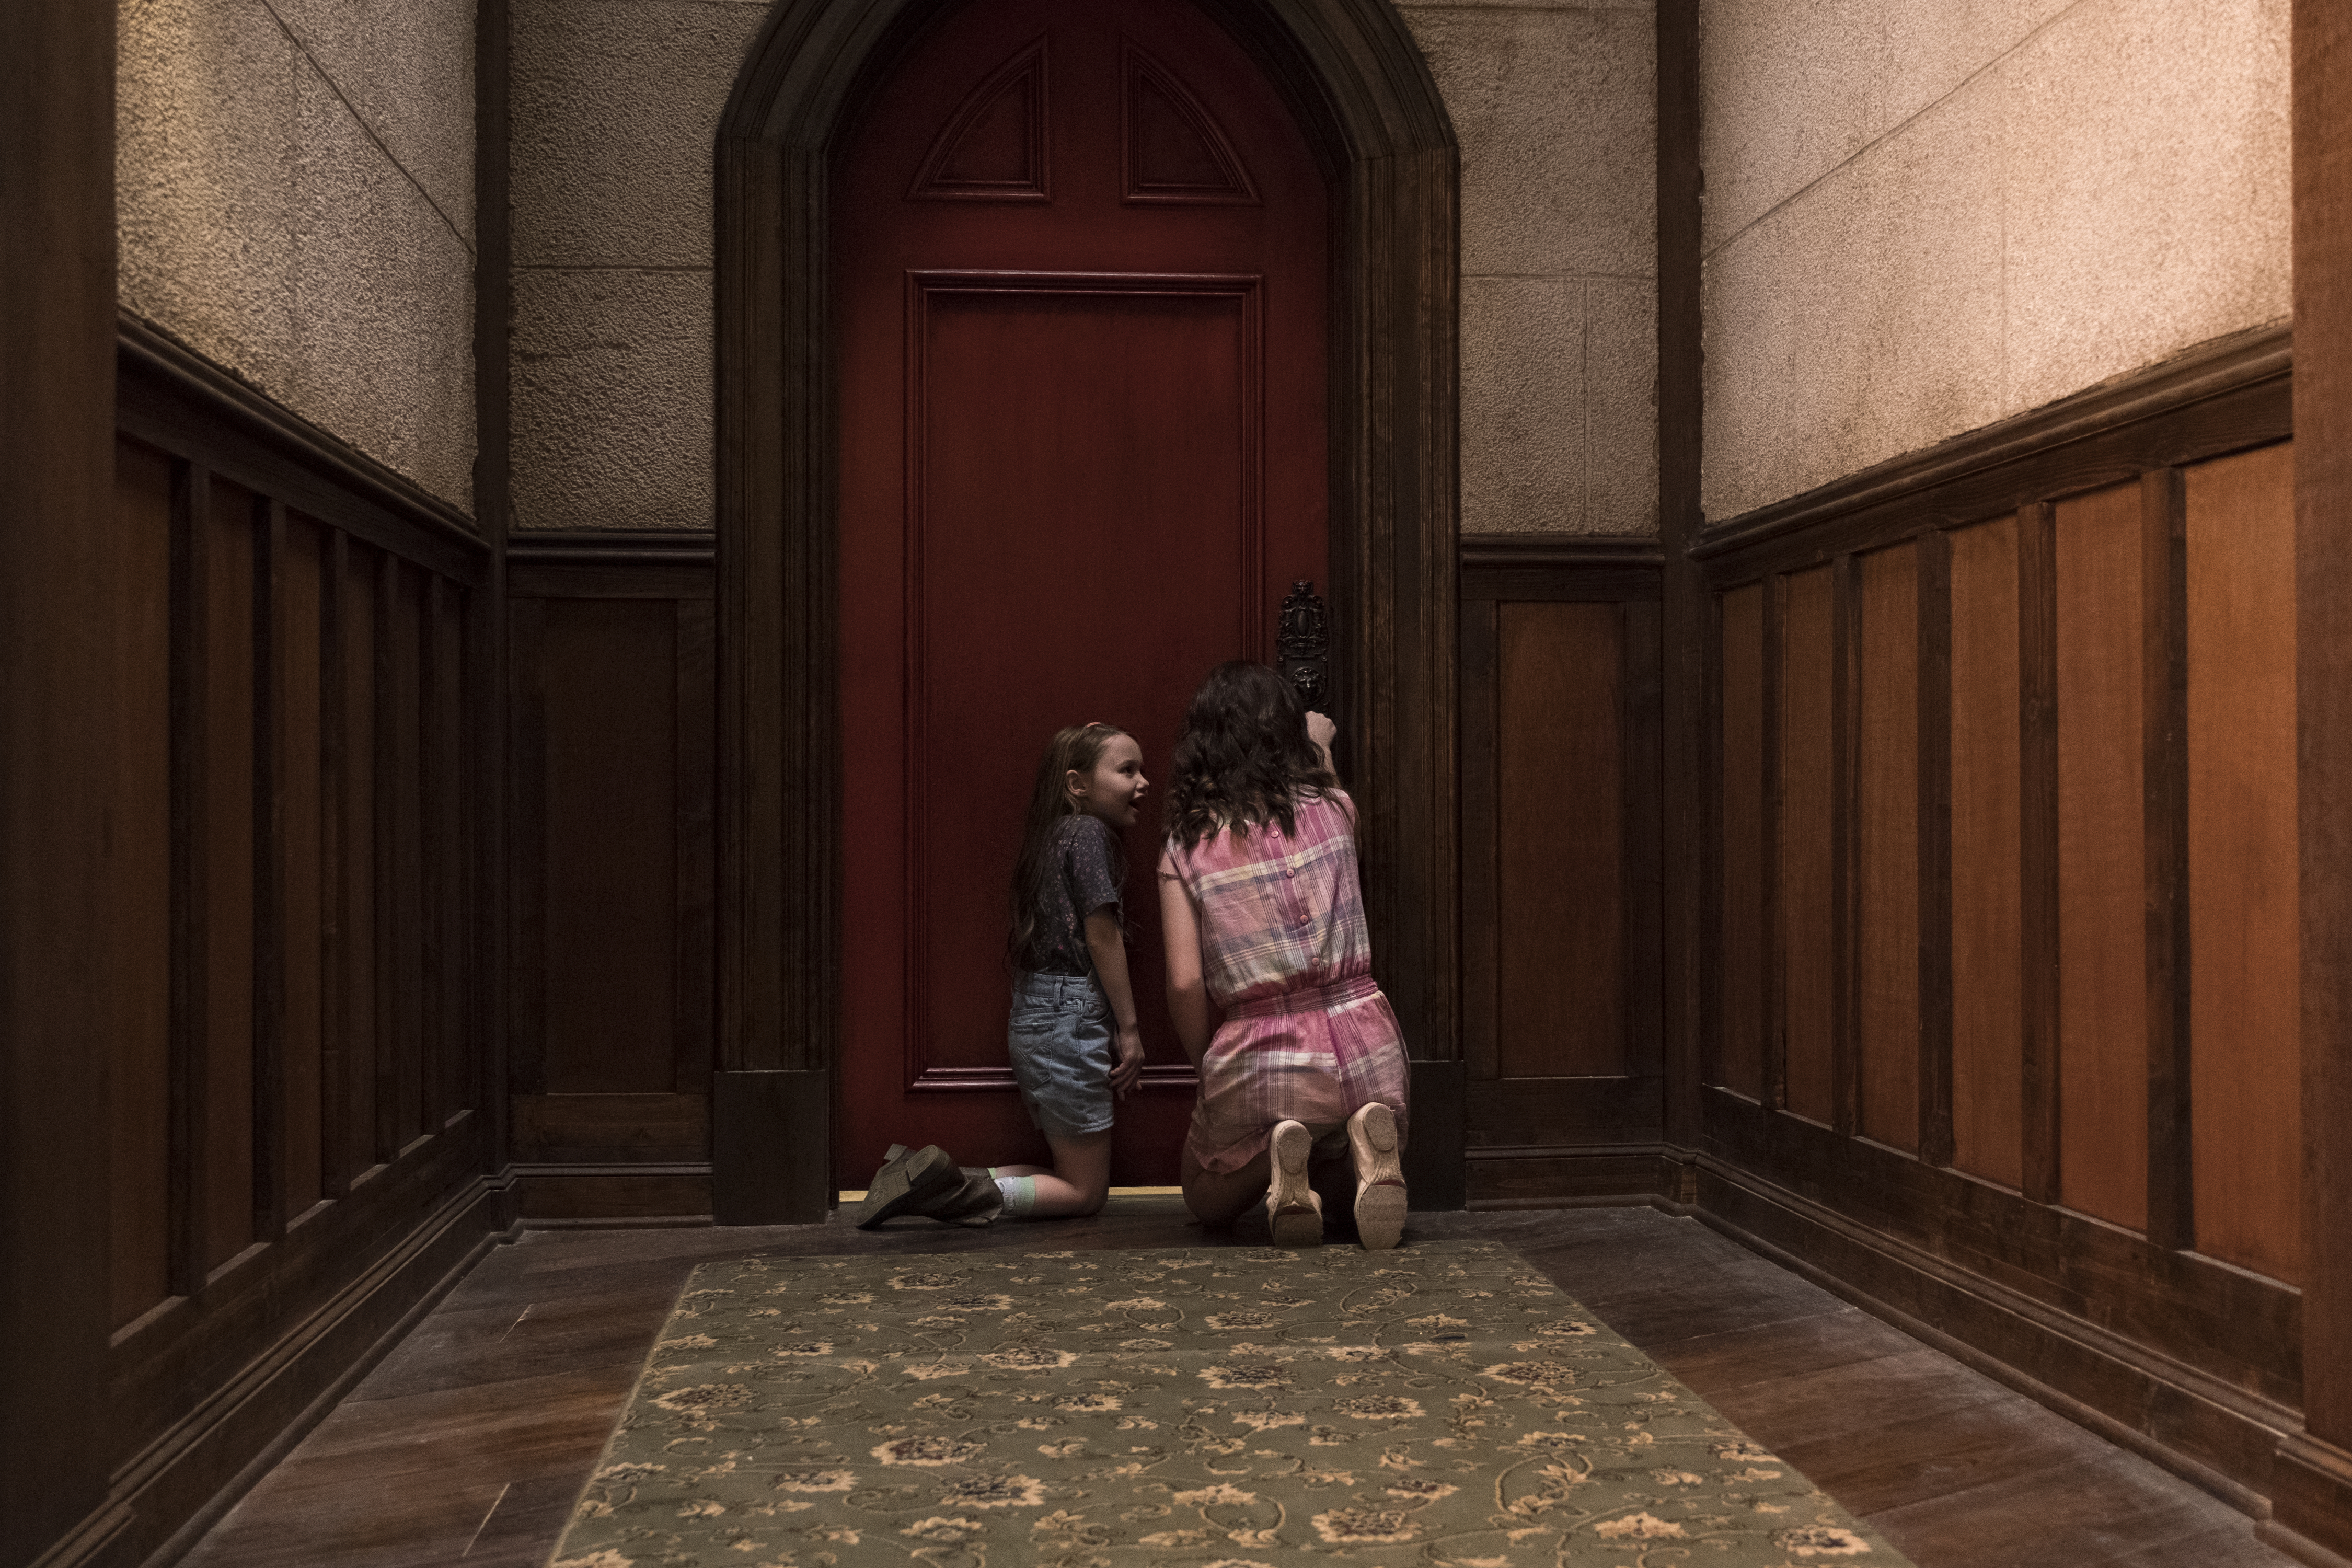 How Netflix Made The Haunting Of Hill House Less Scary The New Republic